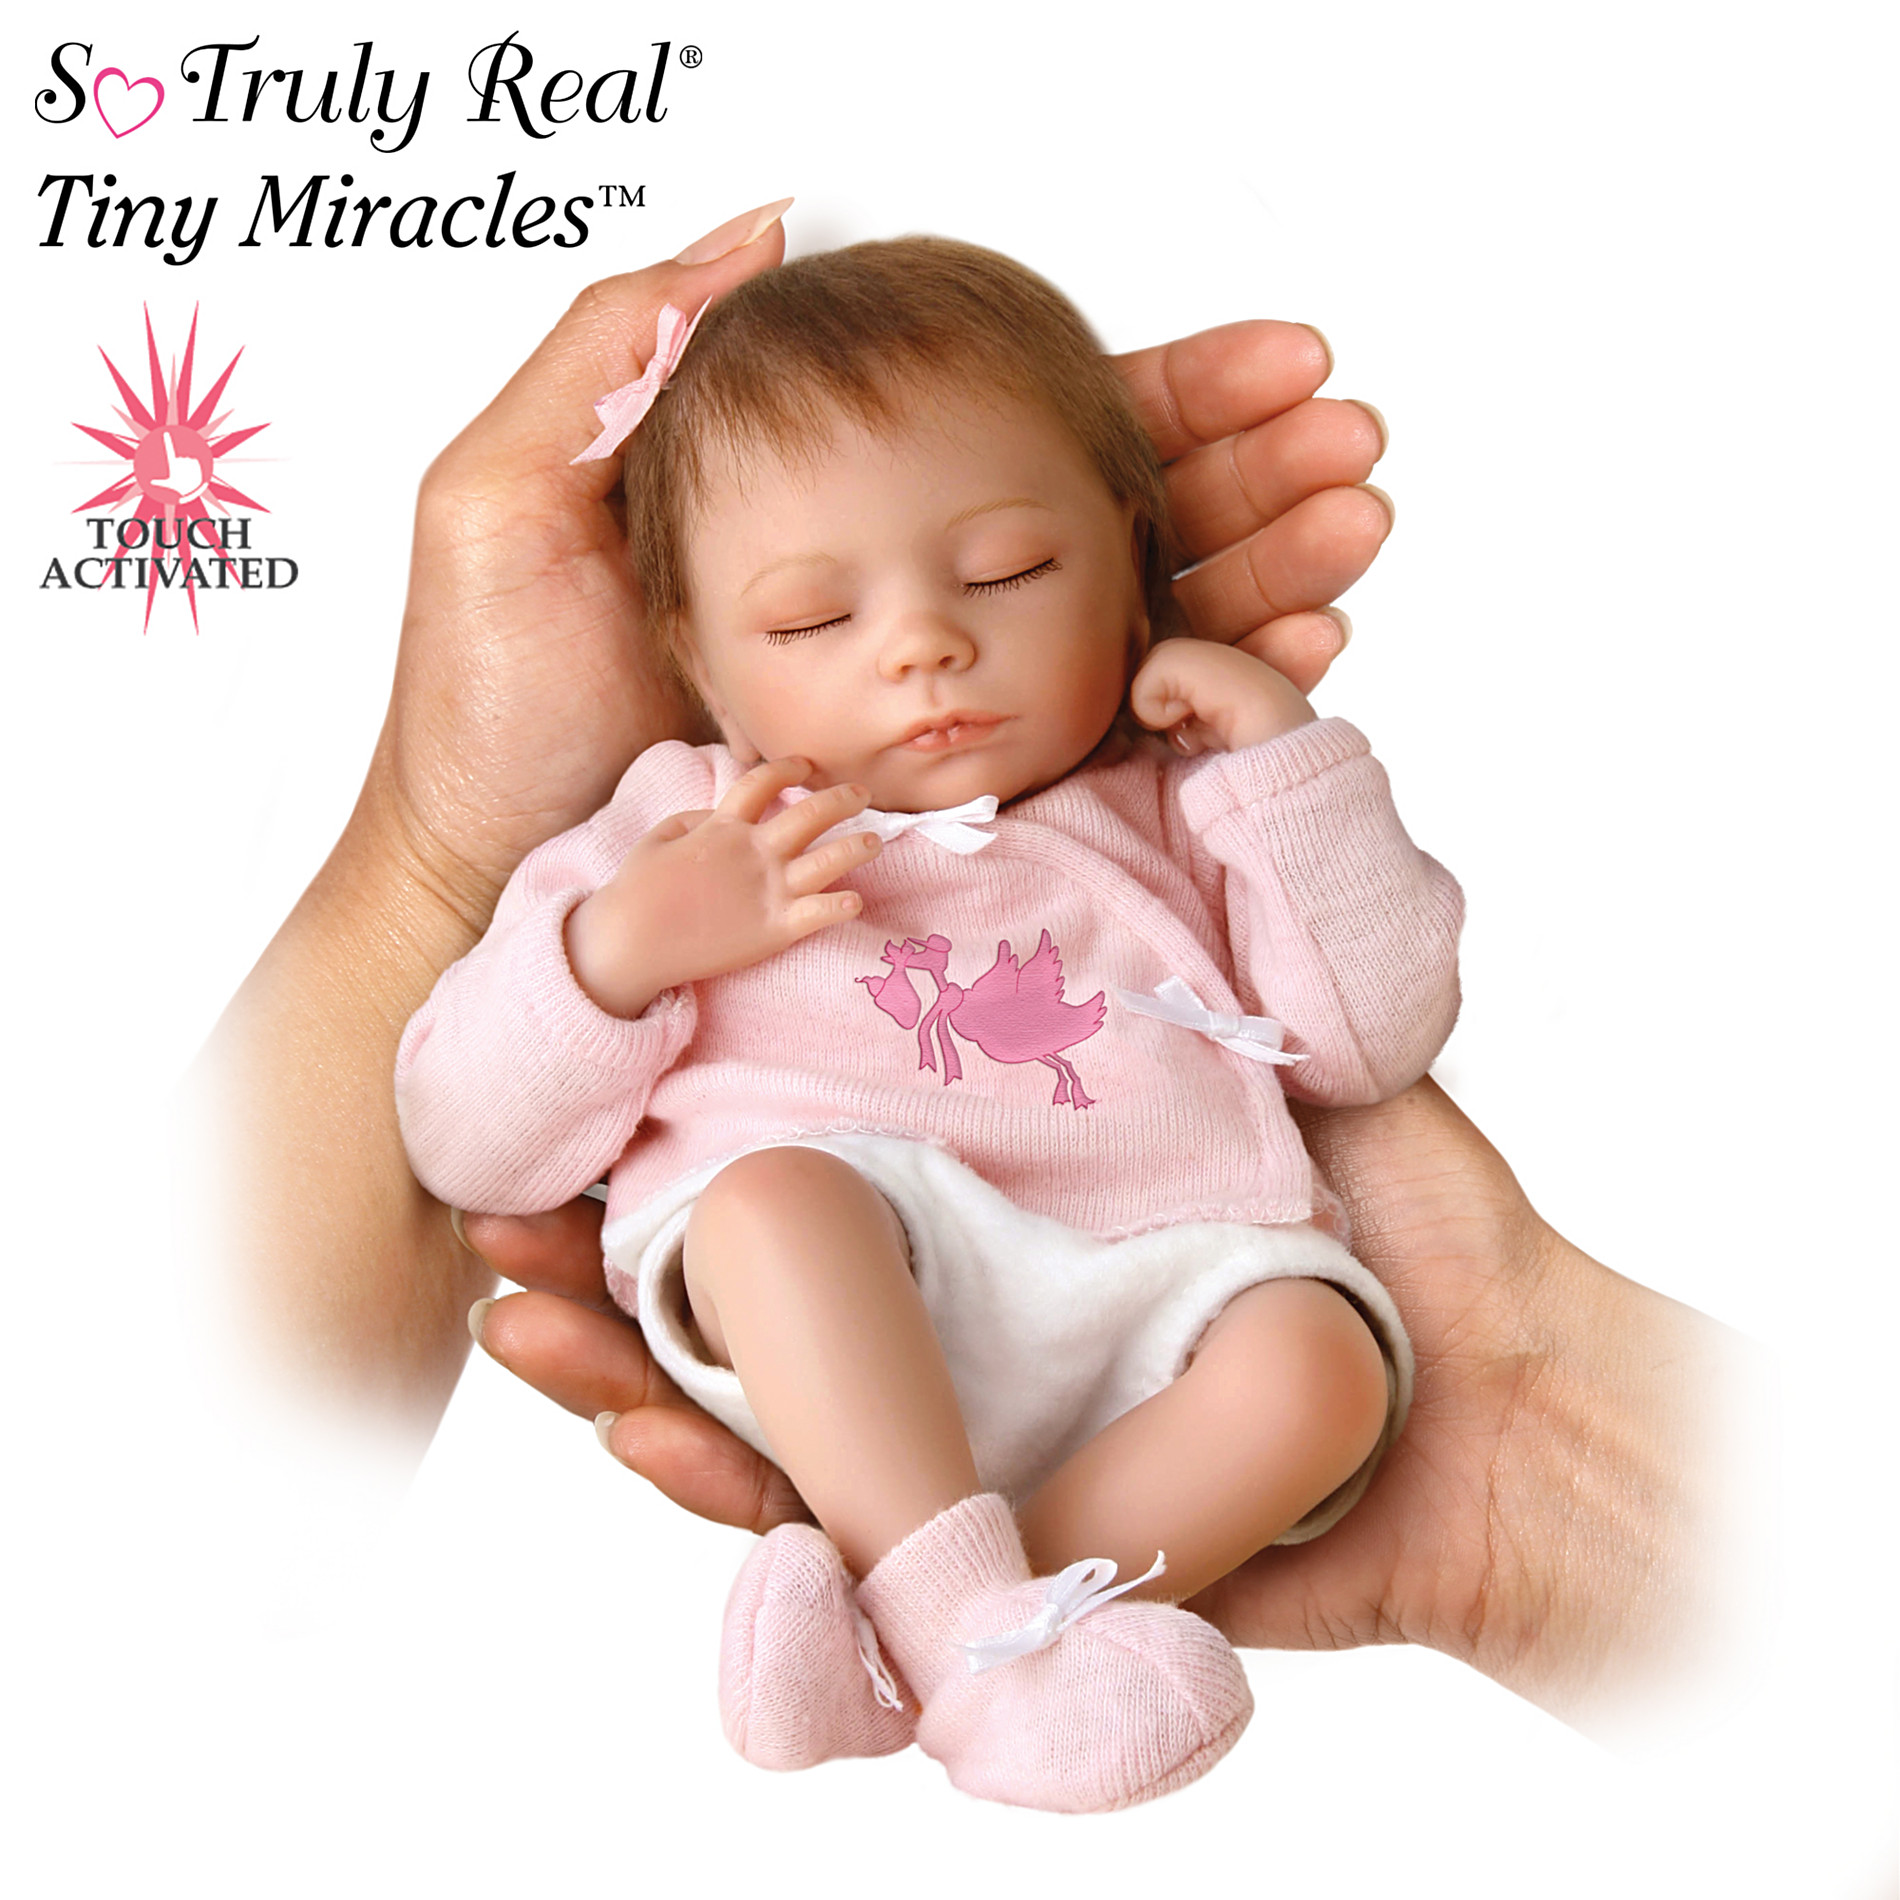 The Ashton-Drake Galleries Tiny Miracles Ashley Collectible Lifelike Miniature Breathing Baby Doll: So Truly Real at Sears.com